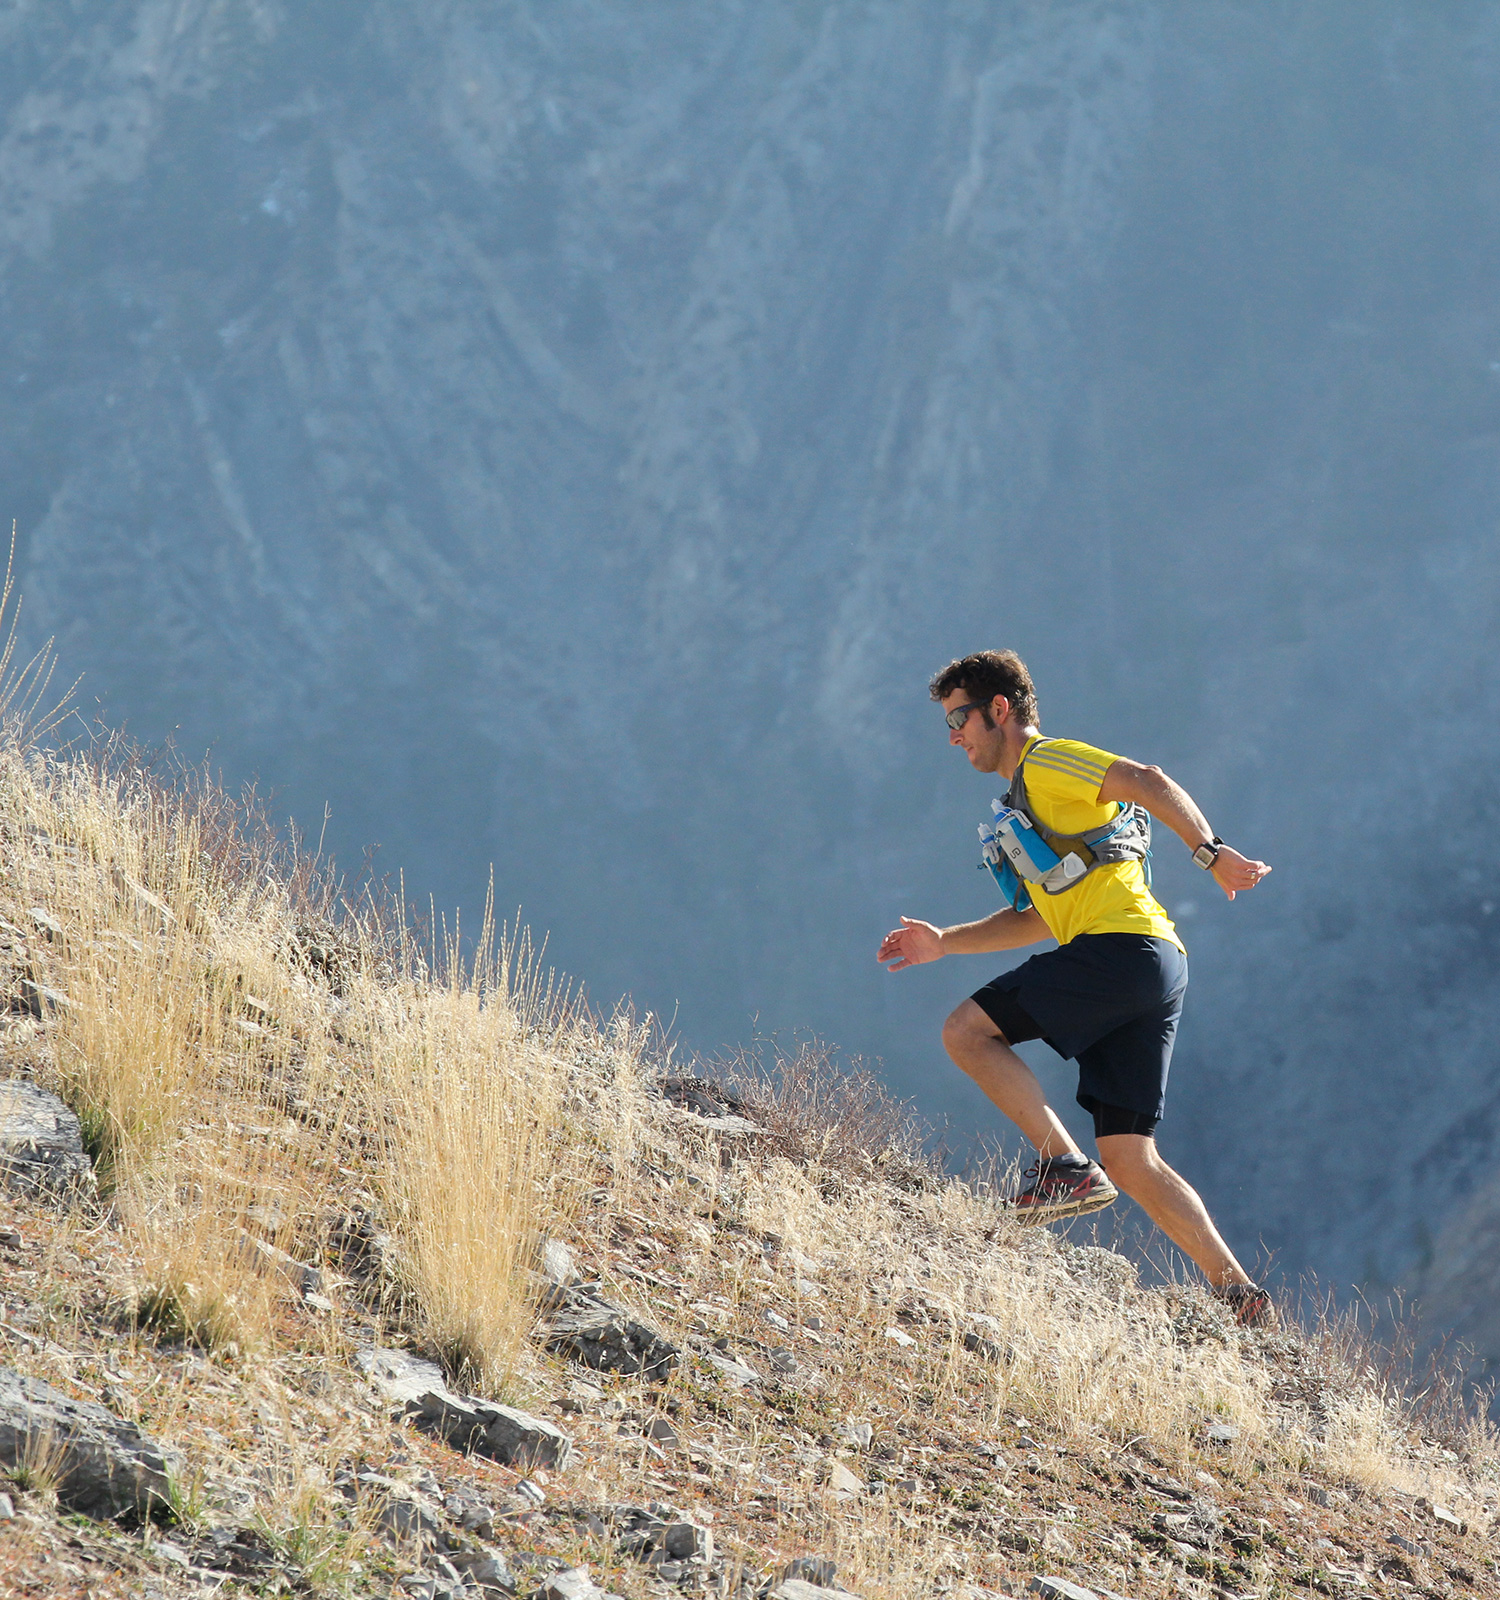 trail-running-mountains-pictures.jpg